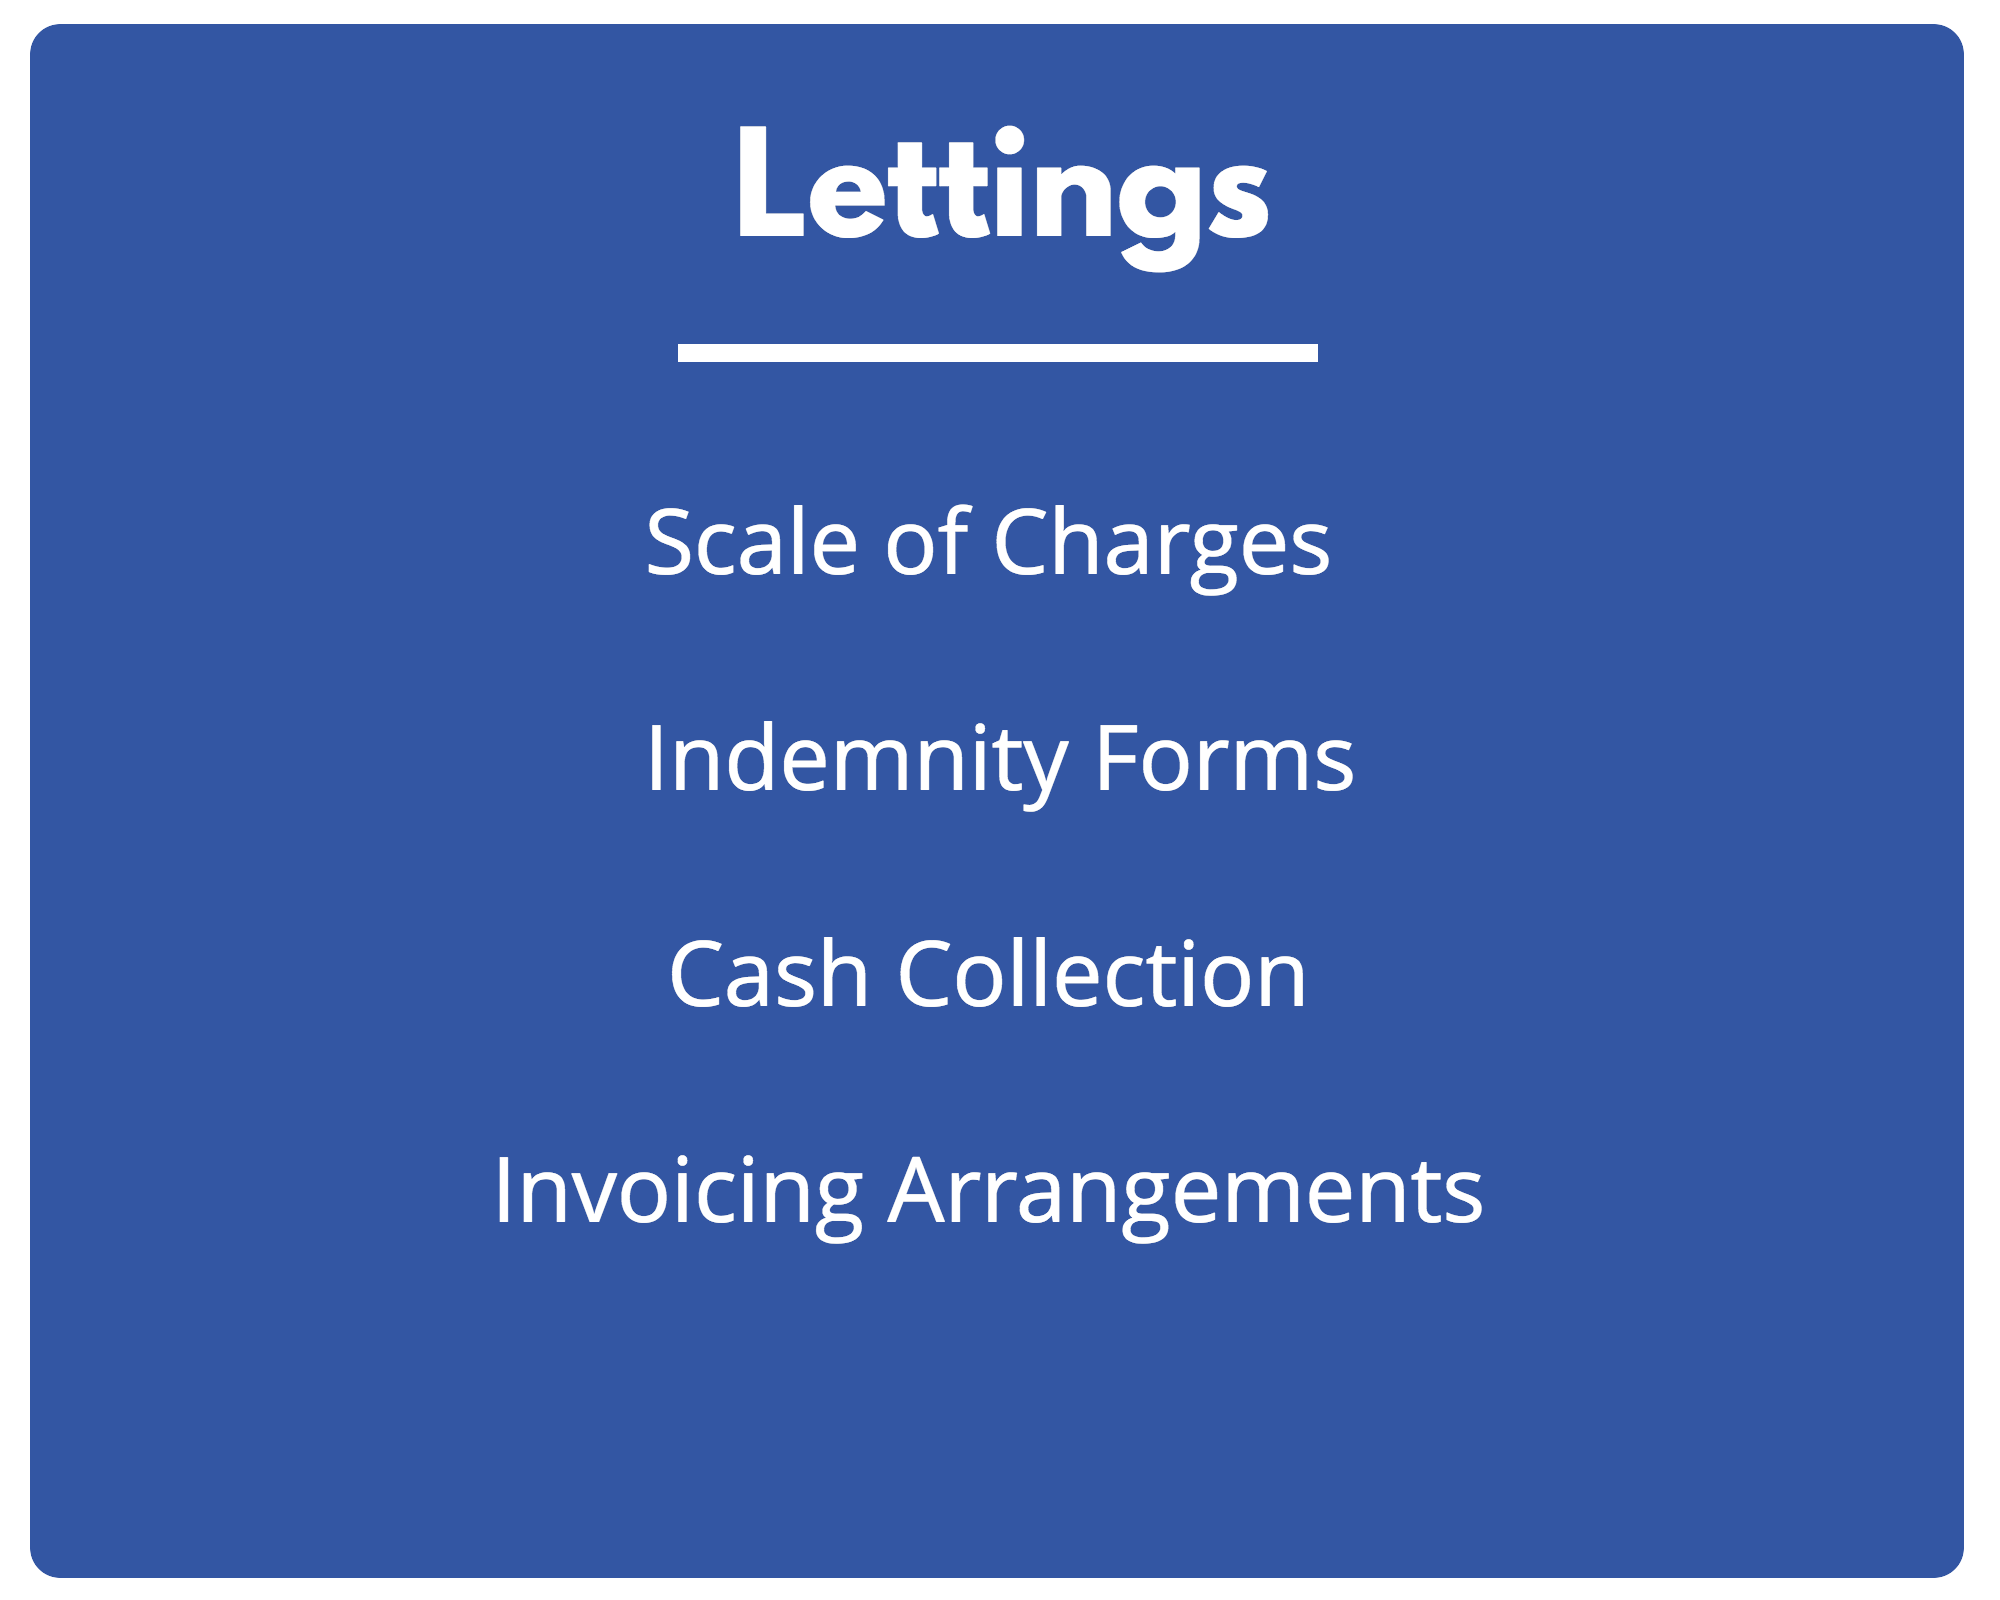 Lettings.png